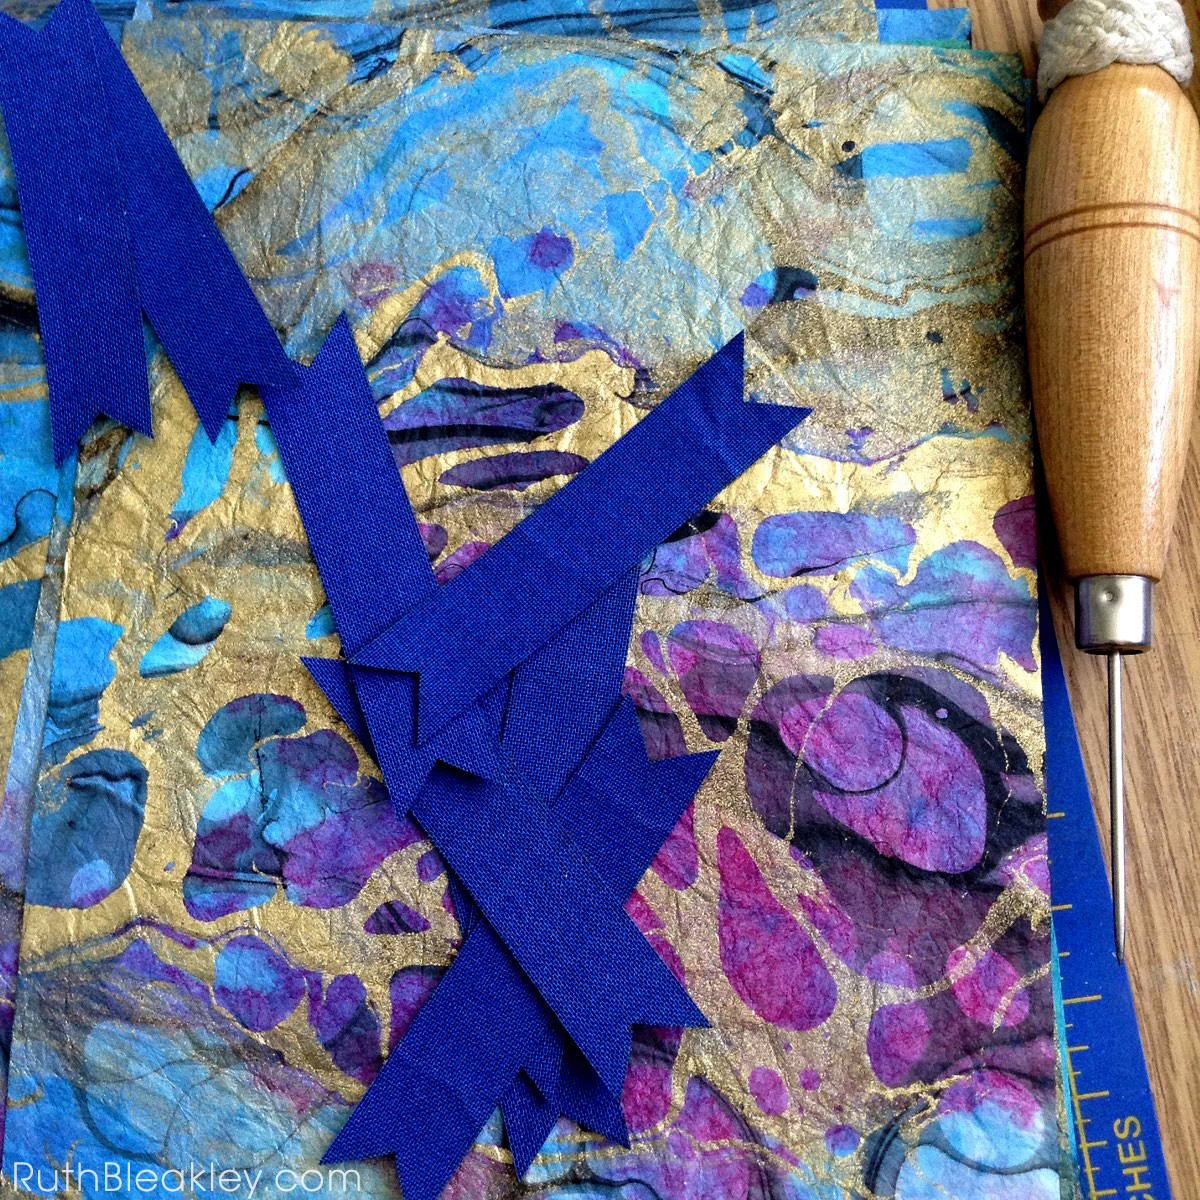 Gold and Indigo Branches - French Link Journals made by Florida book artist Ruth Bleakley - 9